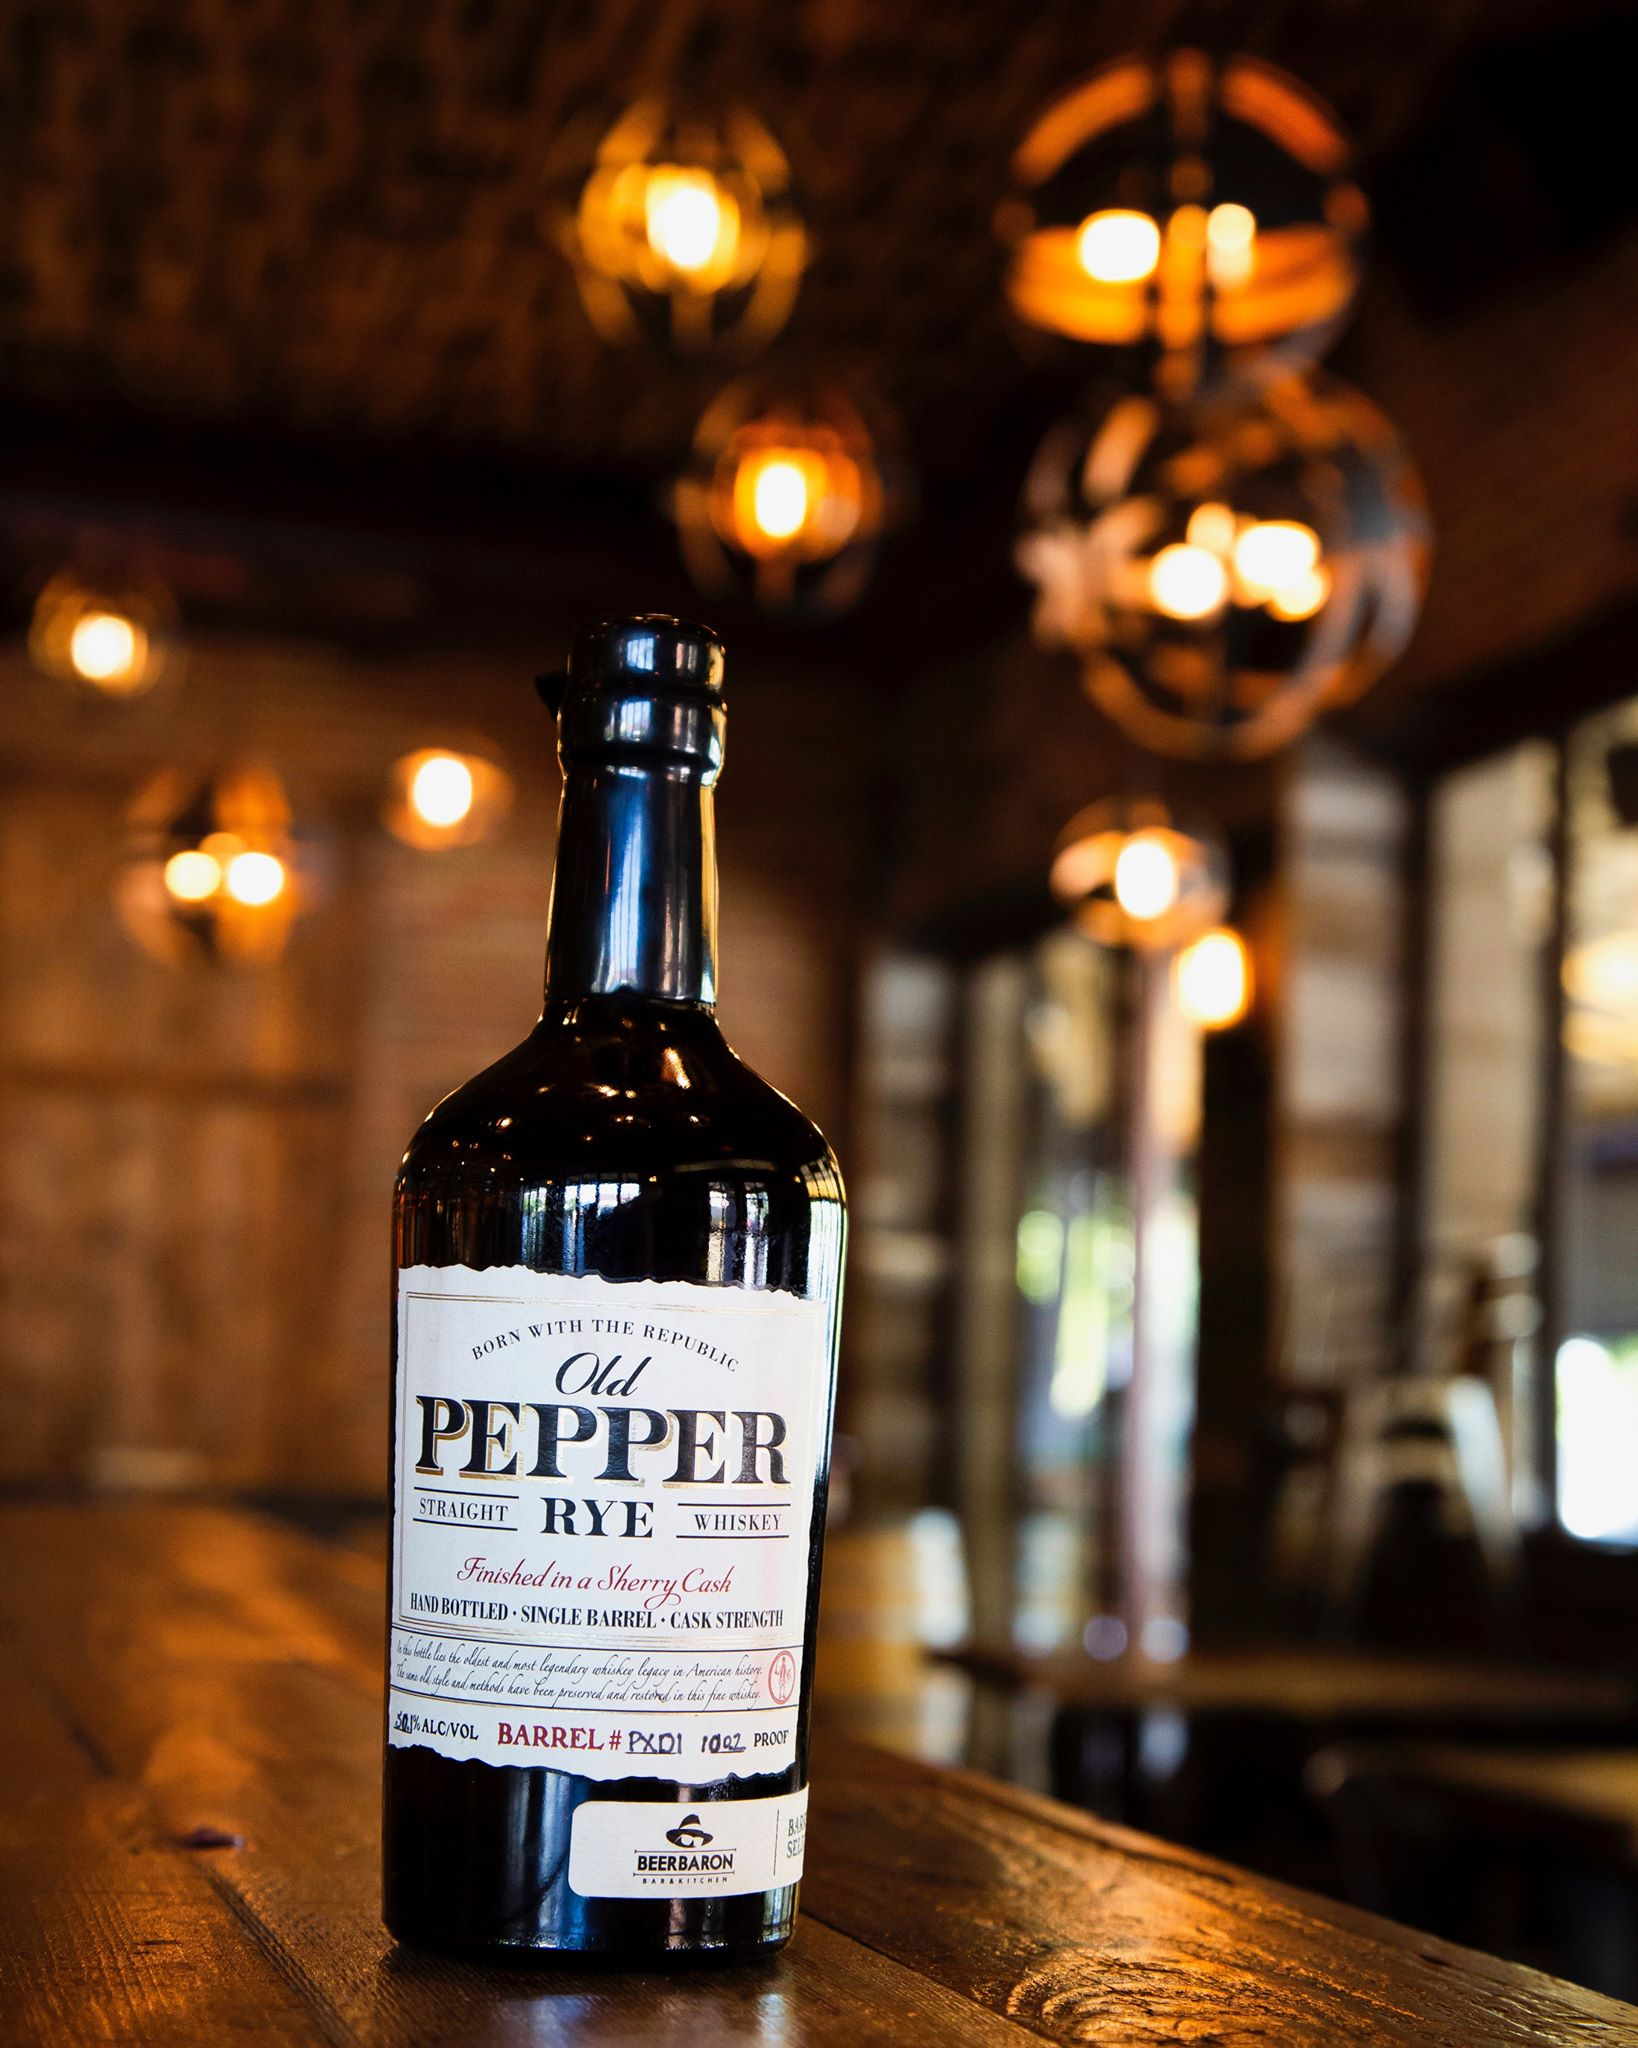 What's up Whiskey Wednesday fans? We are bringing another house barrel selection to you with our Old Pepper 5 year Rye from  James E. Pepper Distillery ! This selection, only sold at Beer Baron, is a straight rye finished in a cherry cask, giving it notes of sherry on the nose and palate. Because this rye whiskey is bottled at cask strength, the sweet flavors of sherry bomb, dried apricots, and cola will be sure to pack a punch. Come try this exclusive whiskey and other house barrel selections! Only at Beer Baron!